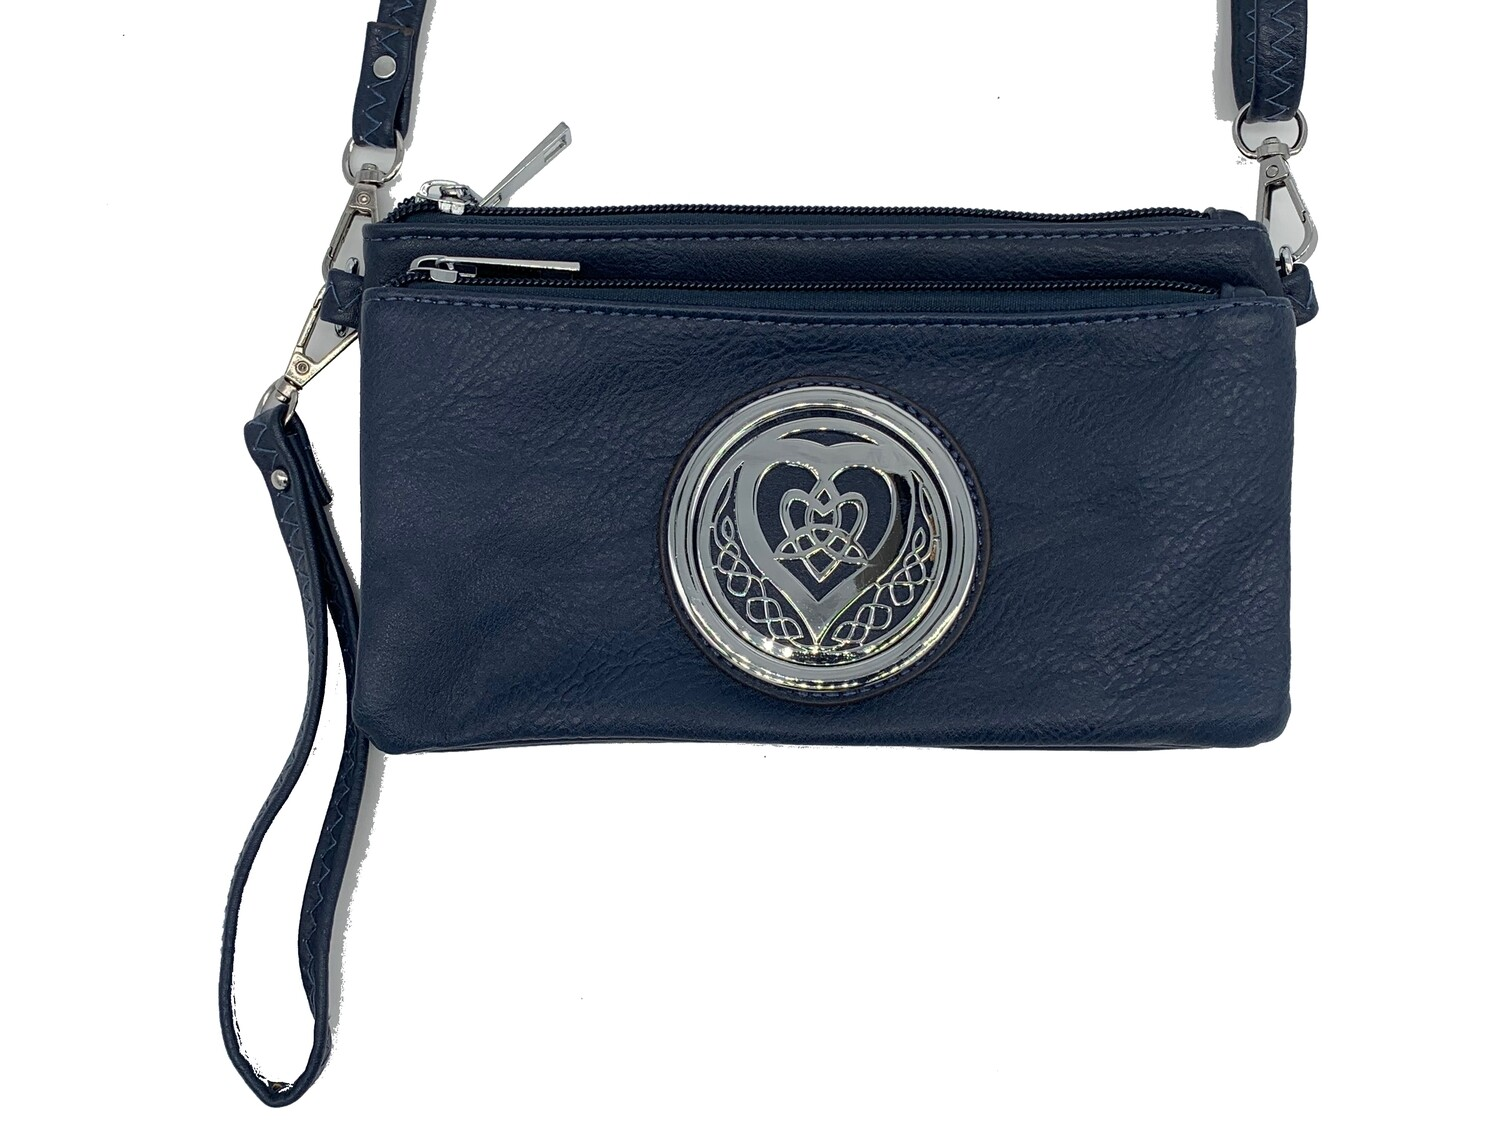 7519 Tri Zip Cell Phone Bag navy